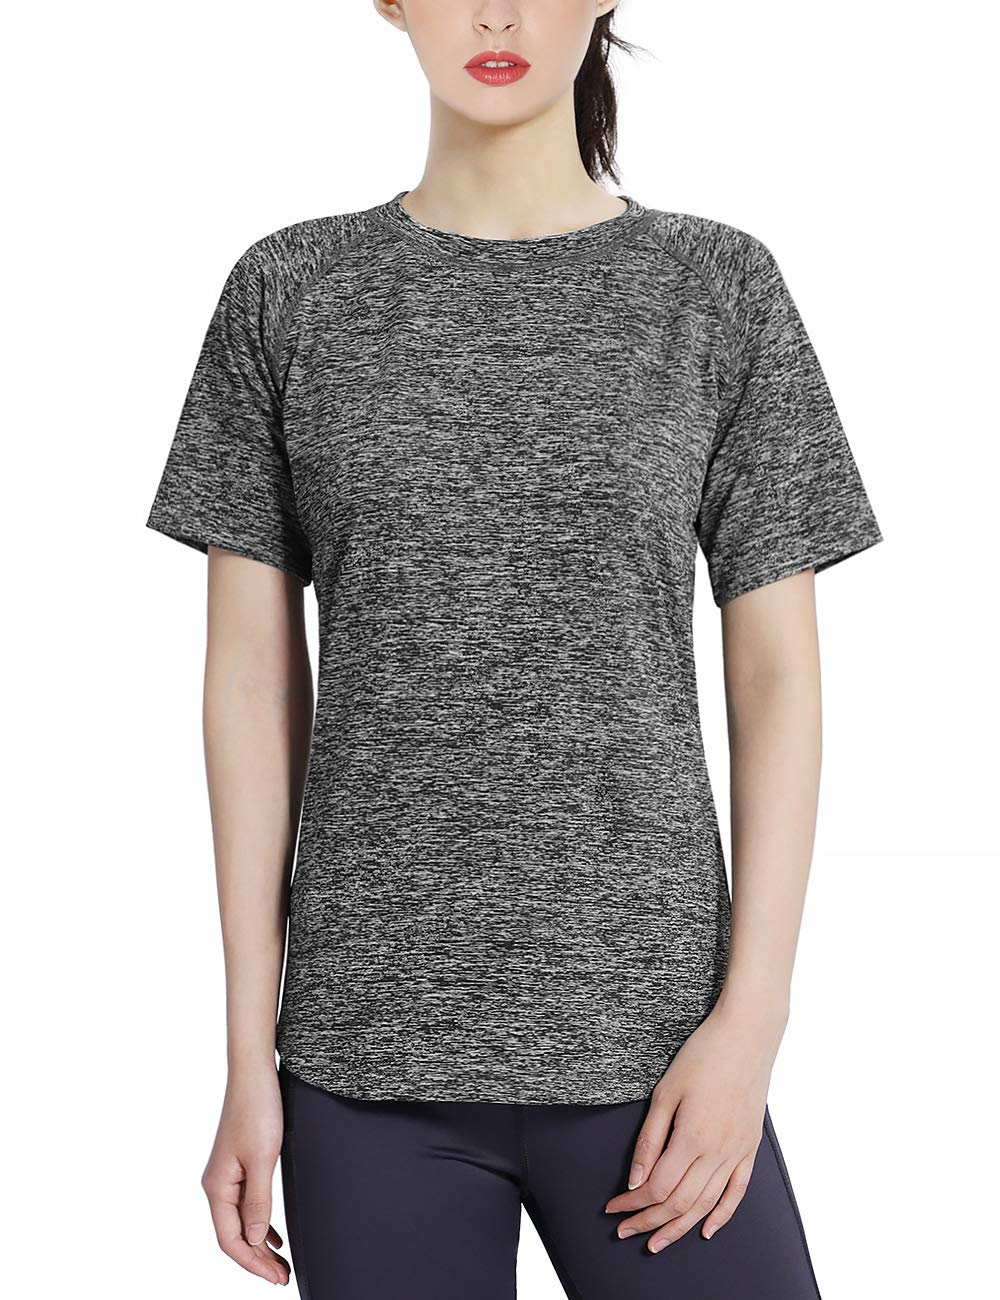 DISHANG Women's Short Sleeve T-Shirt Dry-Fit Cool Activewear Tops